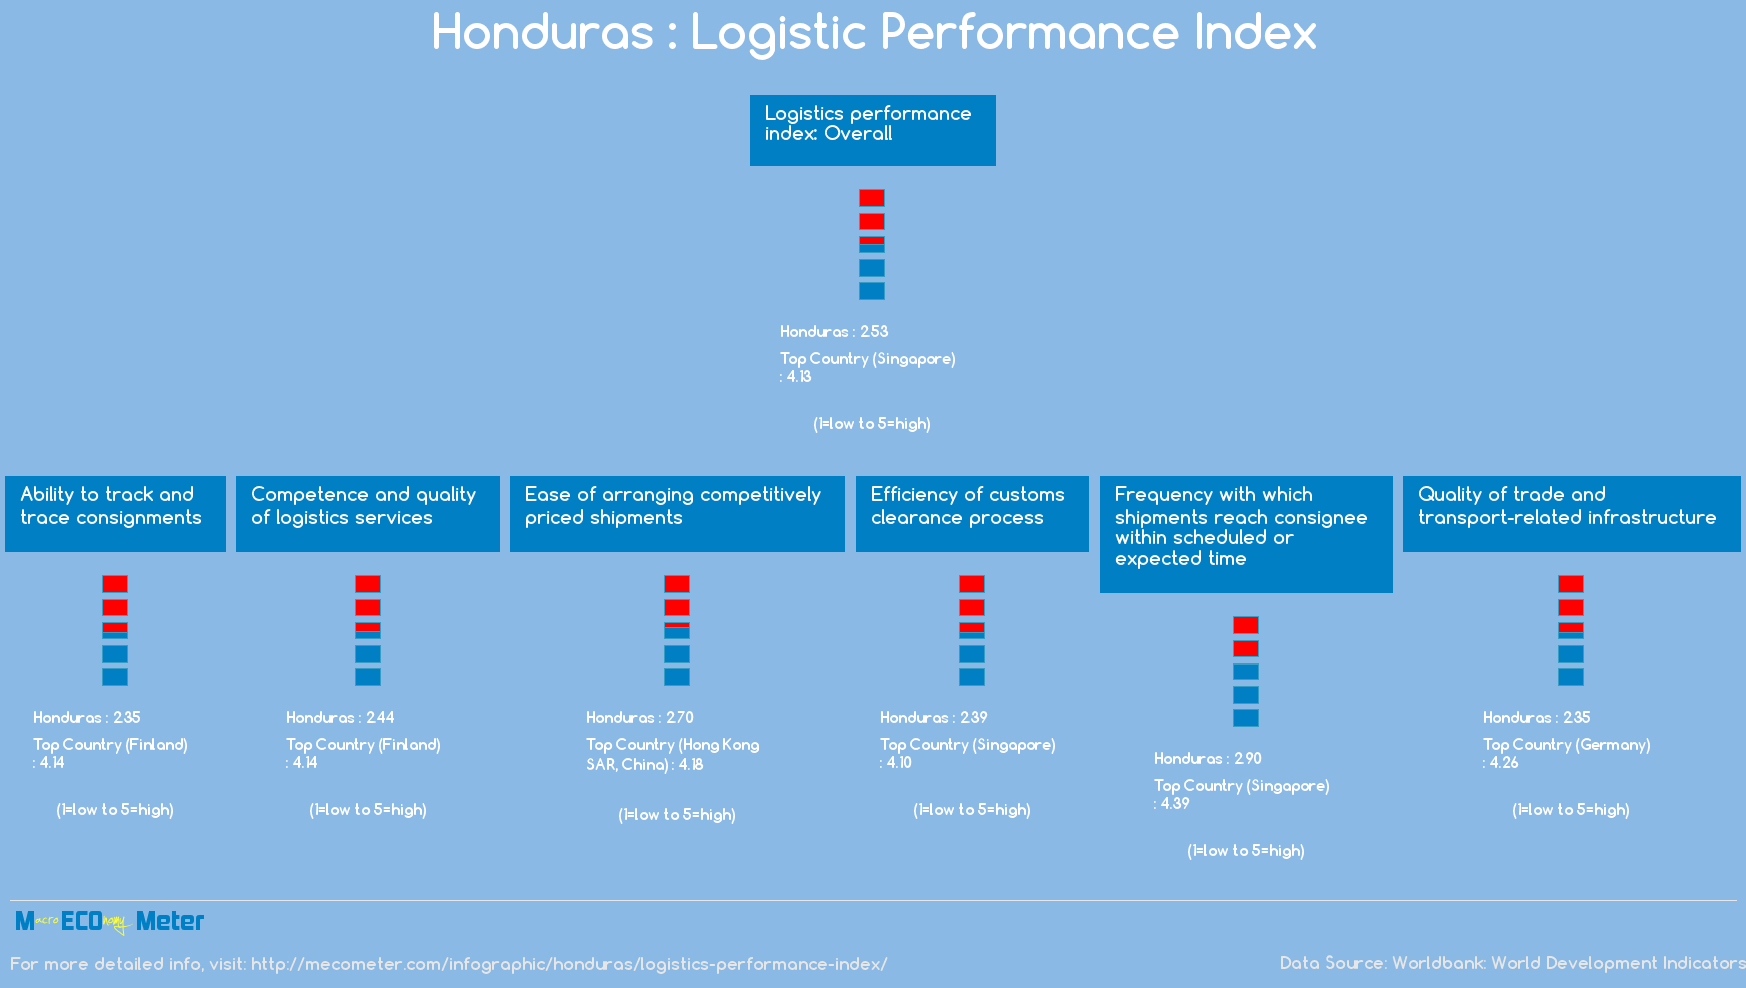 Honduras : Logistic Performance Index